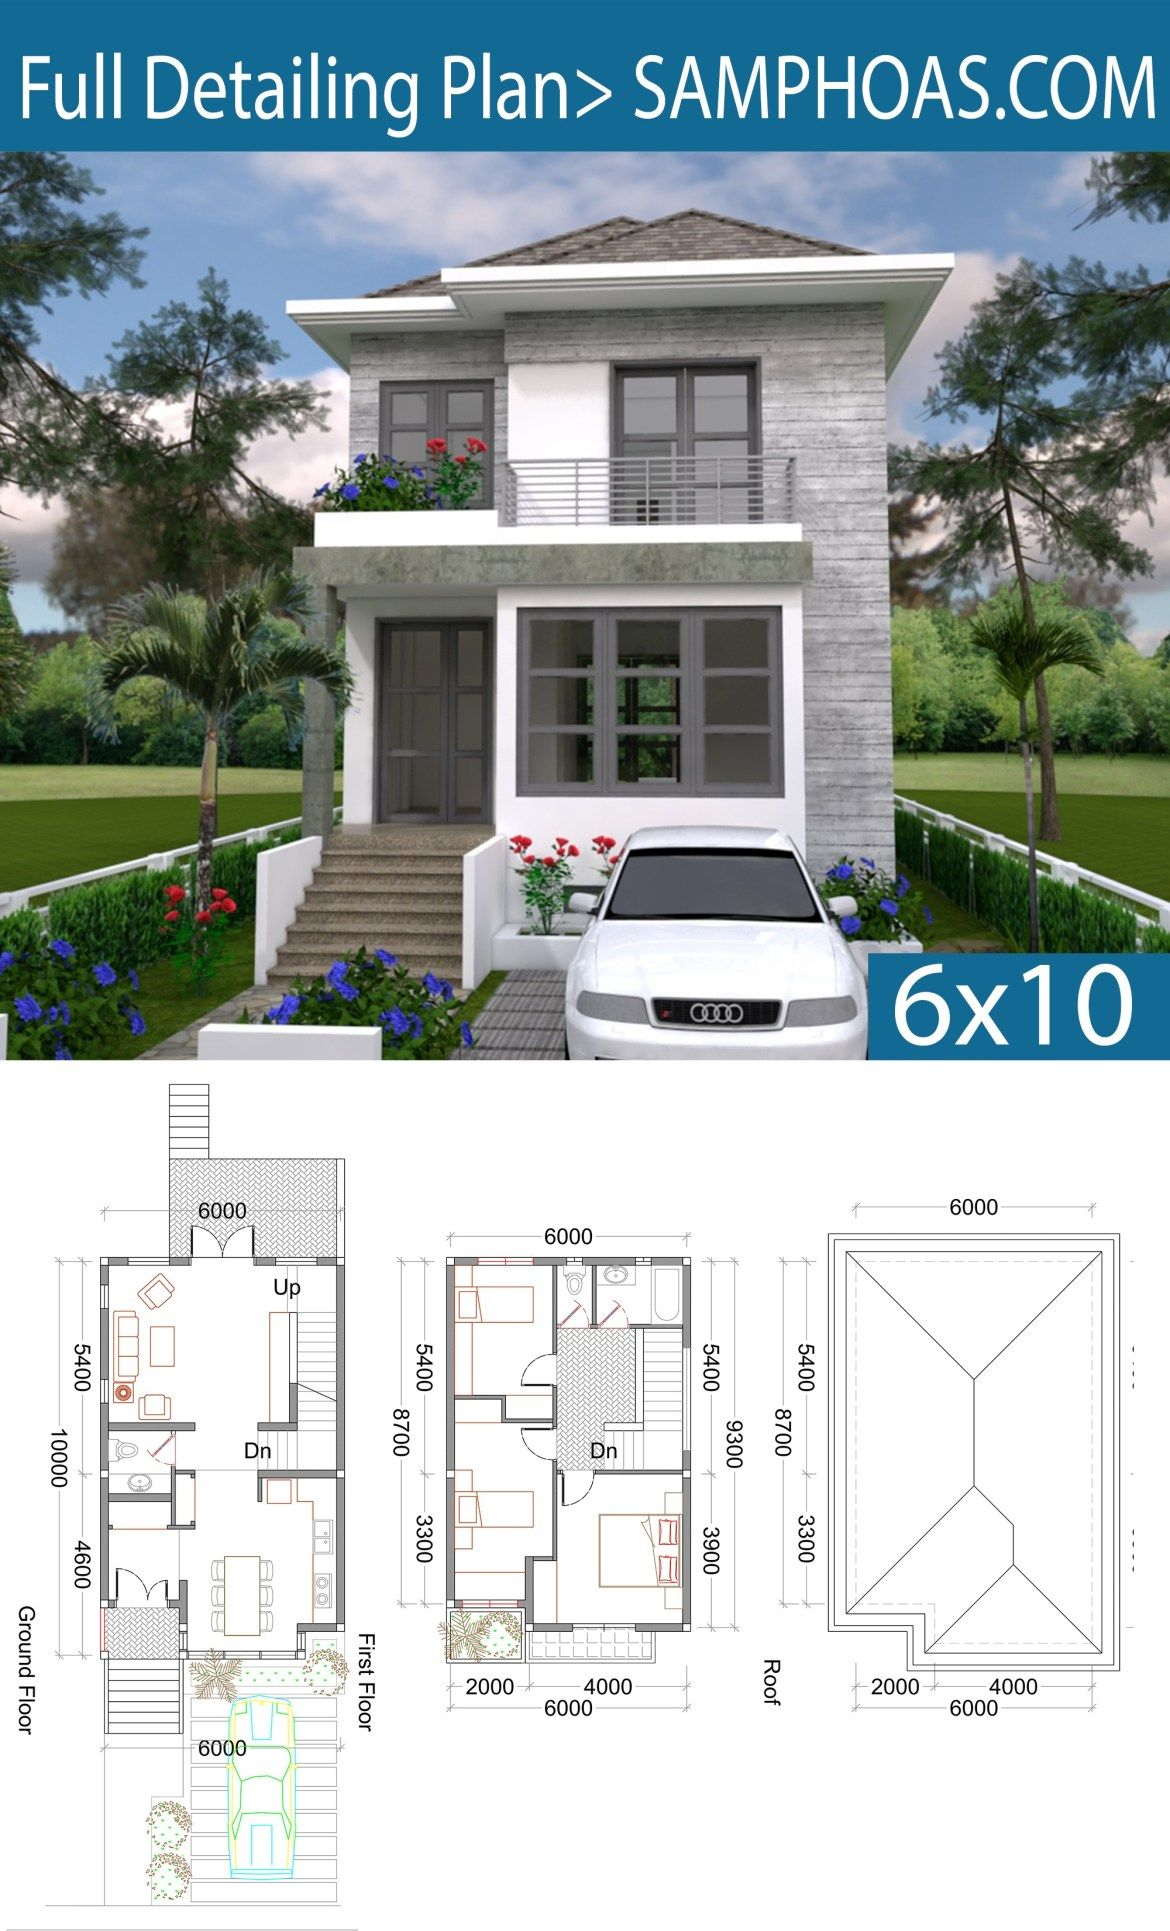 3 Bedrooms Small Home Design Plan 6x10m Samphoas Plansearch Small House Design Plans Architectural House Plans Model House Plan